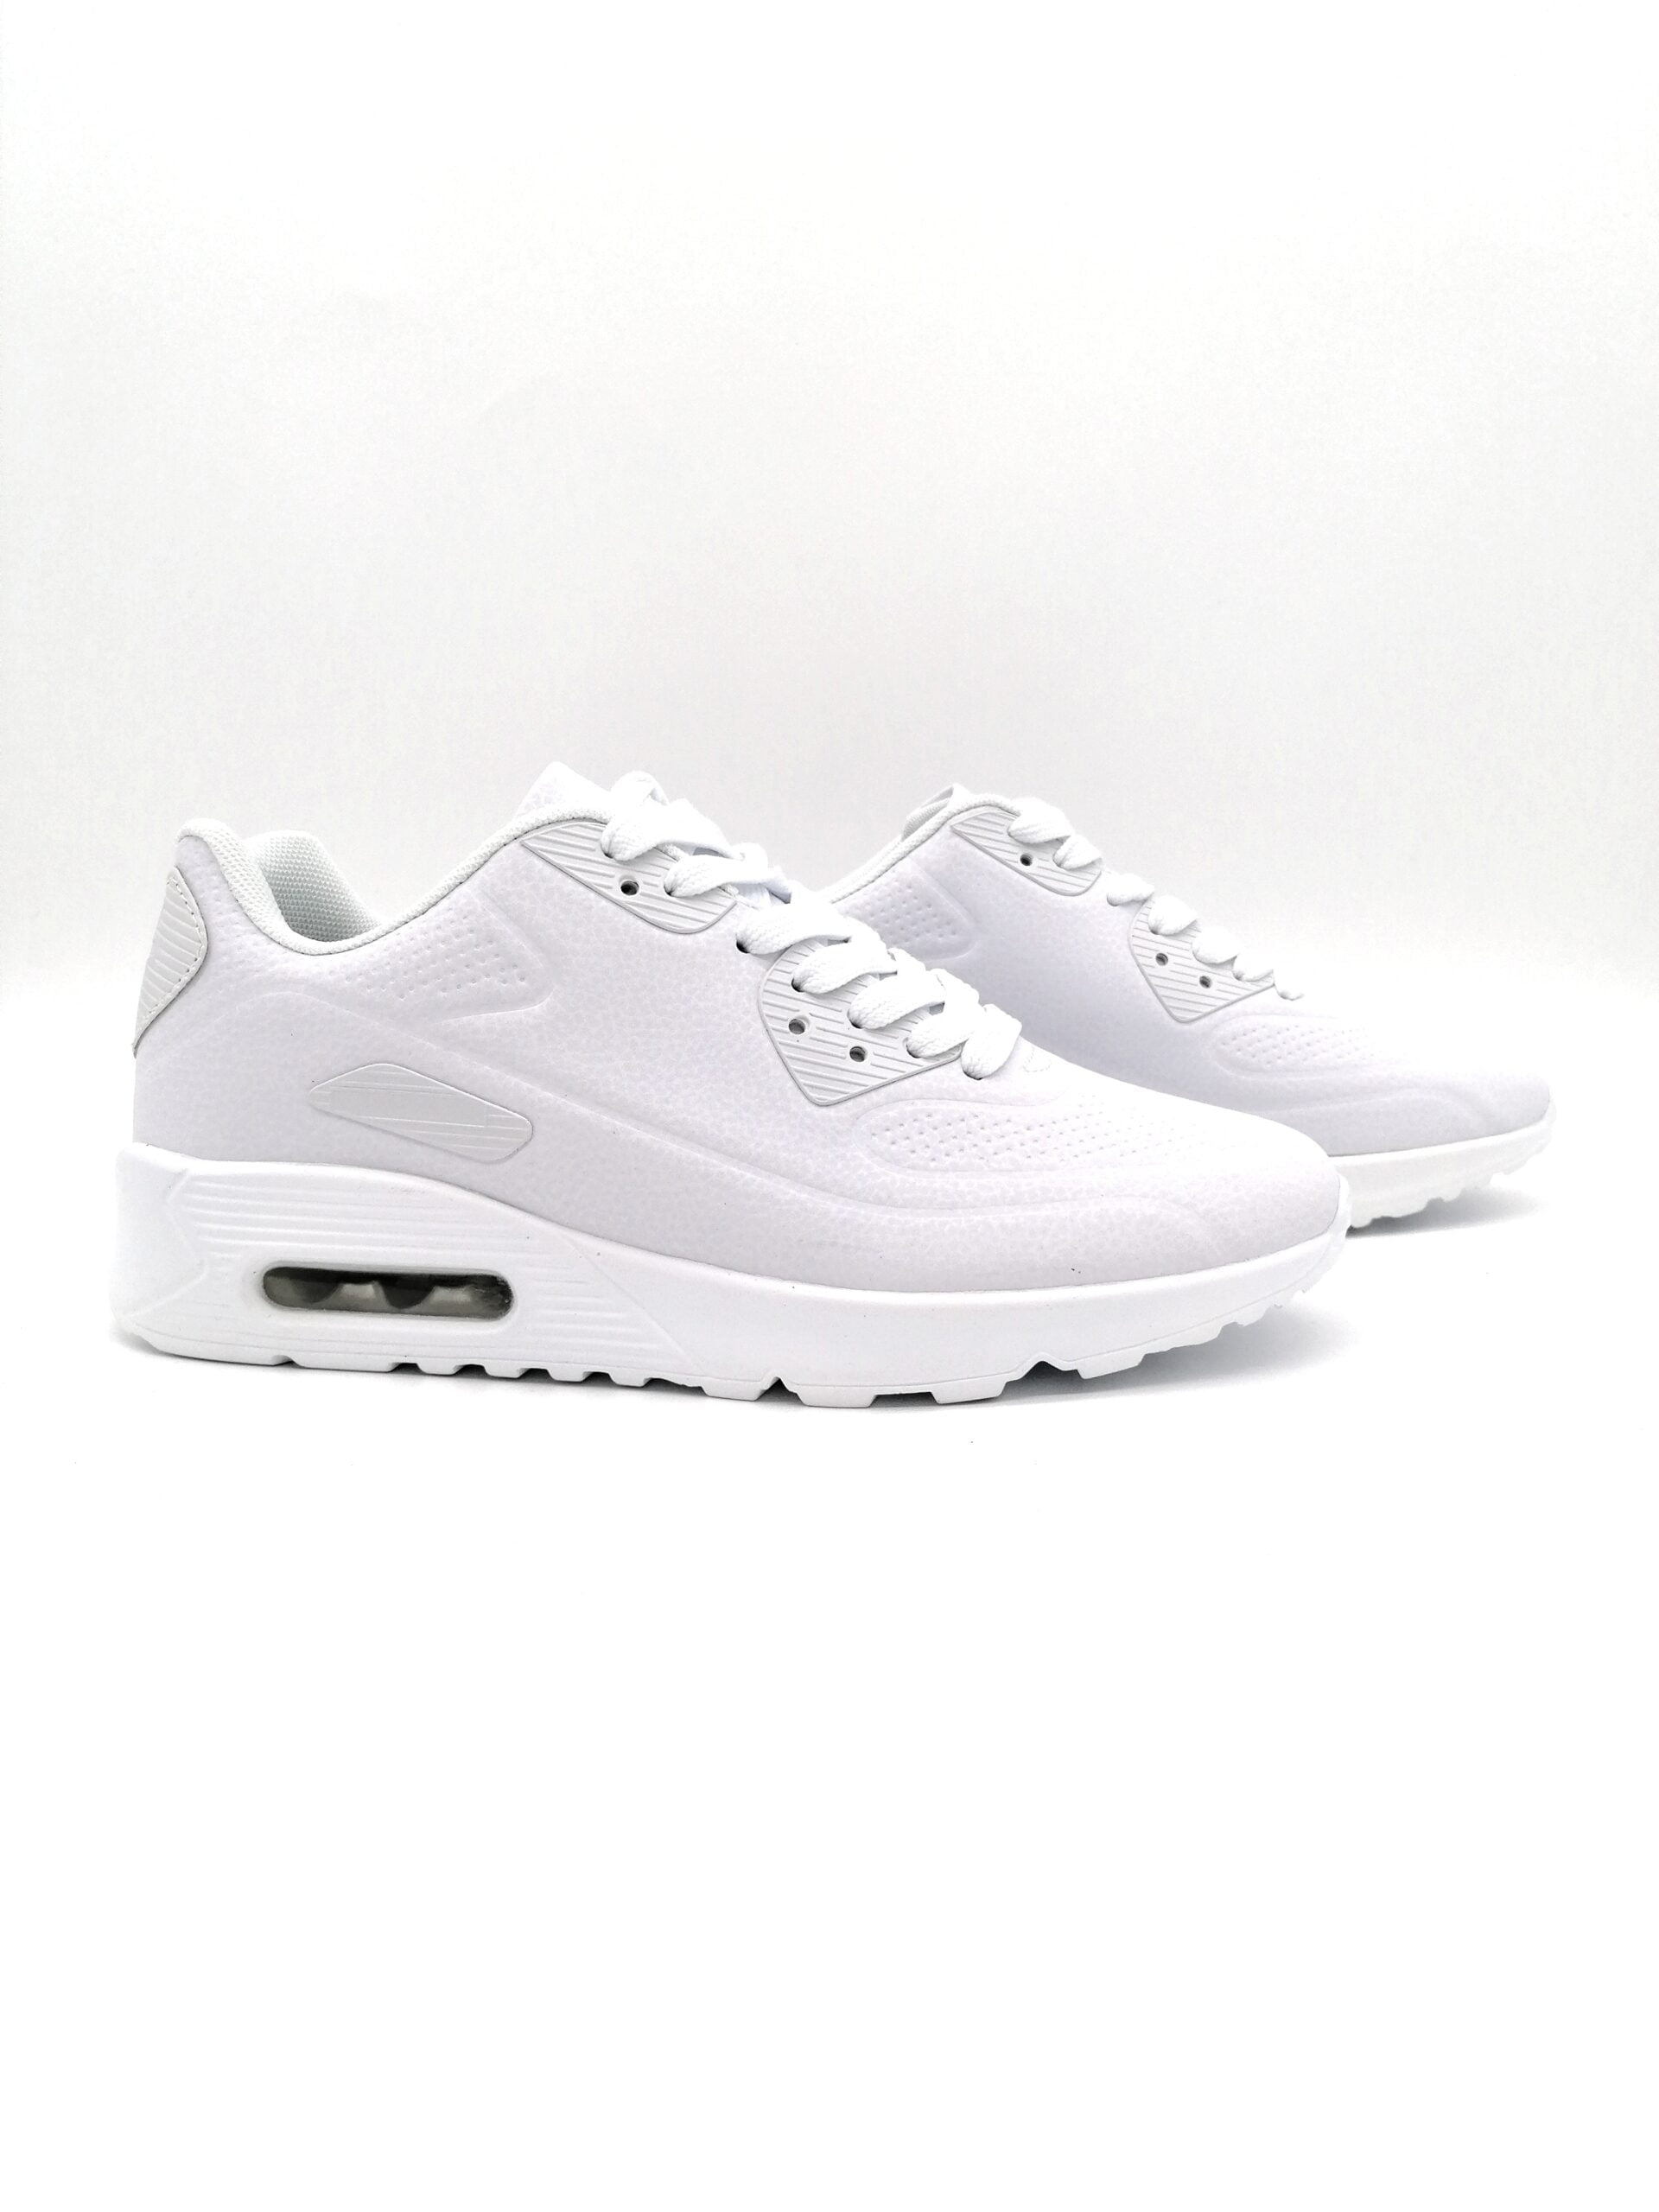 Men's Sports with White Aircle